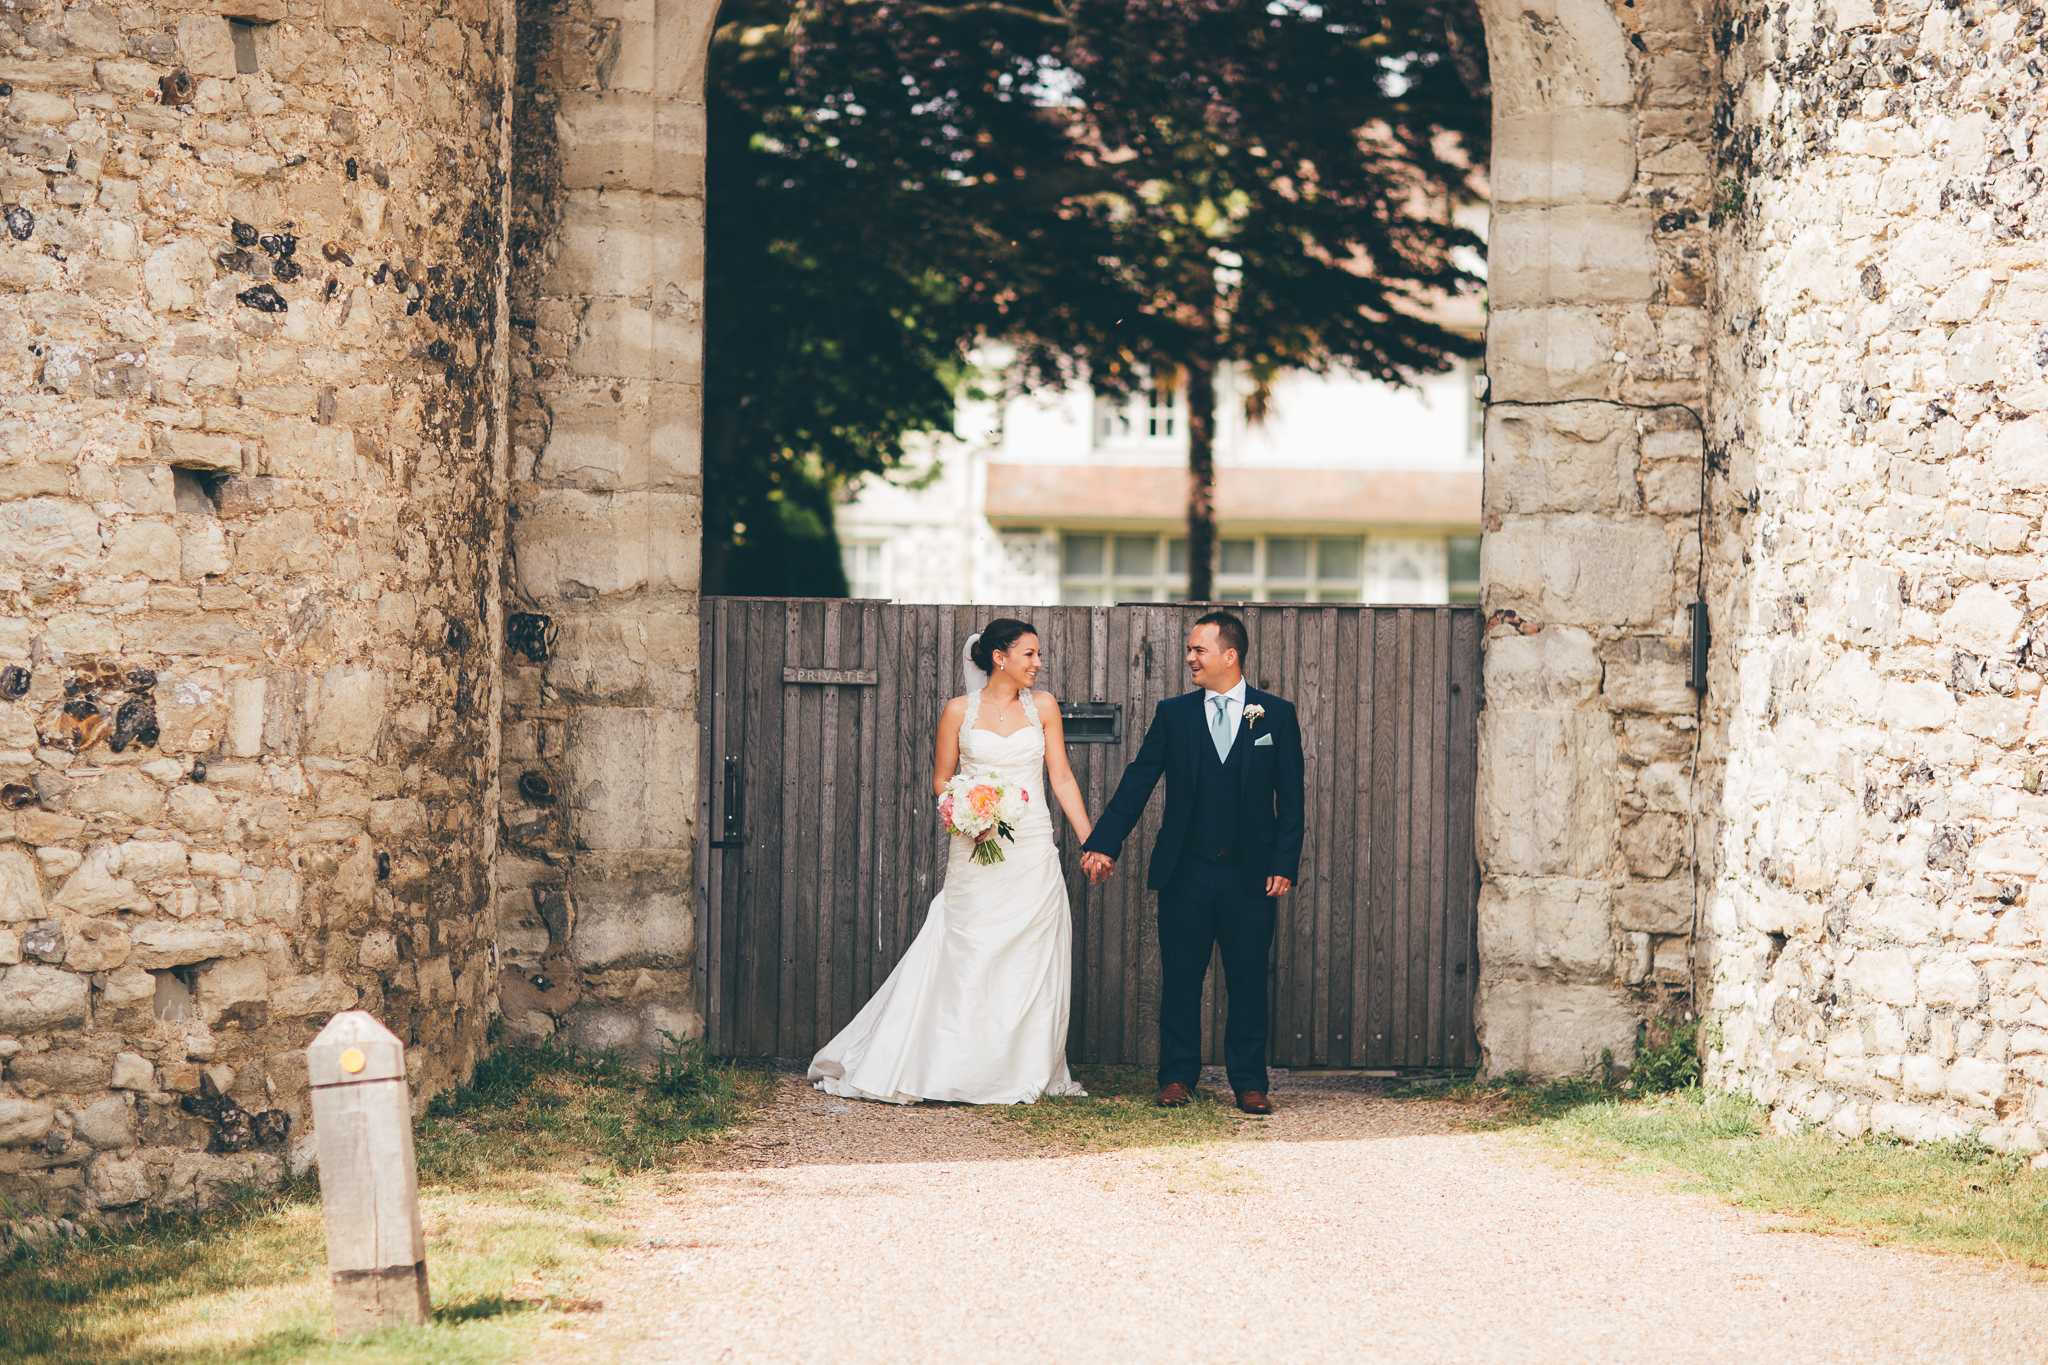 Joanna Nicole Photography Creative artistic wedding photography kent cooling castle barns vintage documentary (58 of 106).jpg